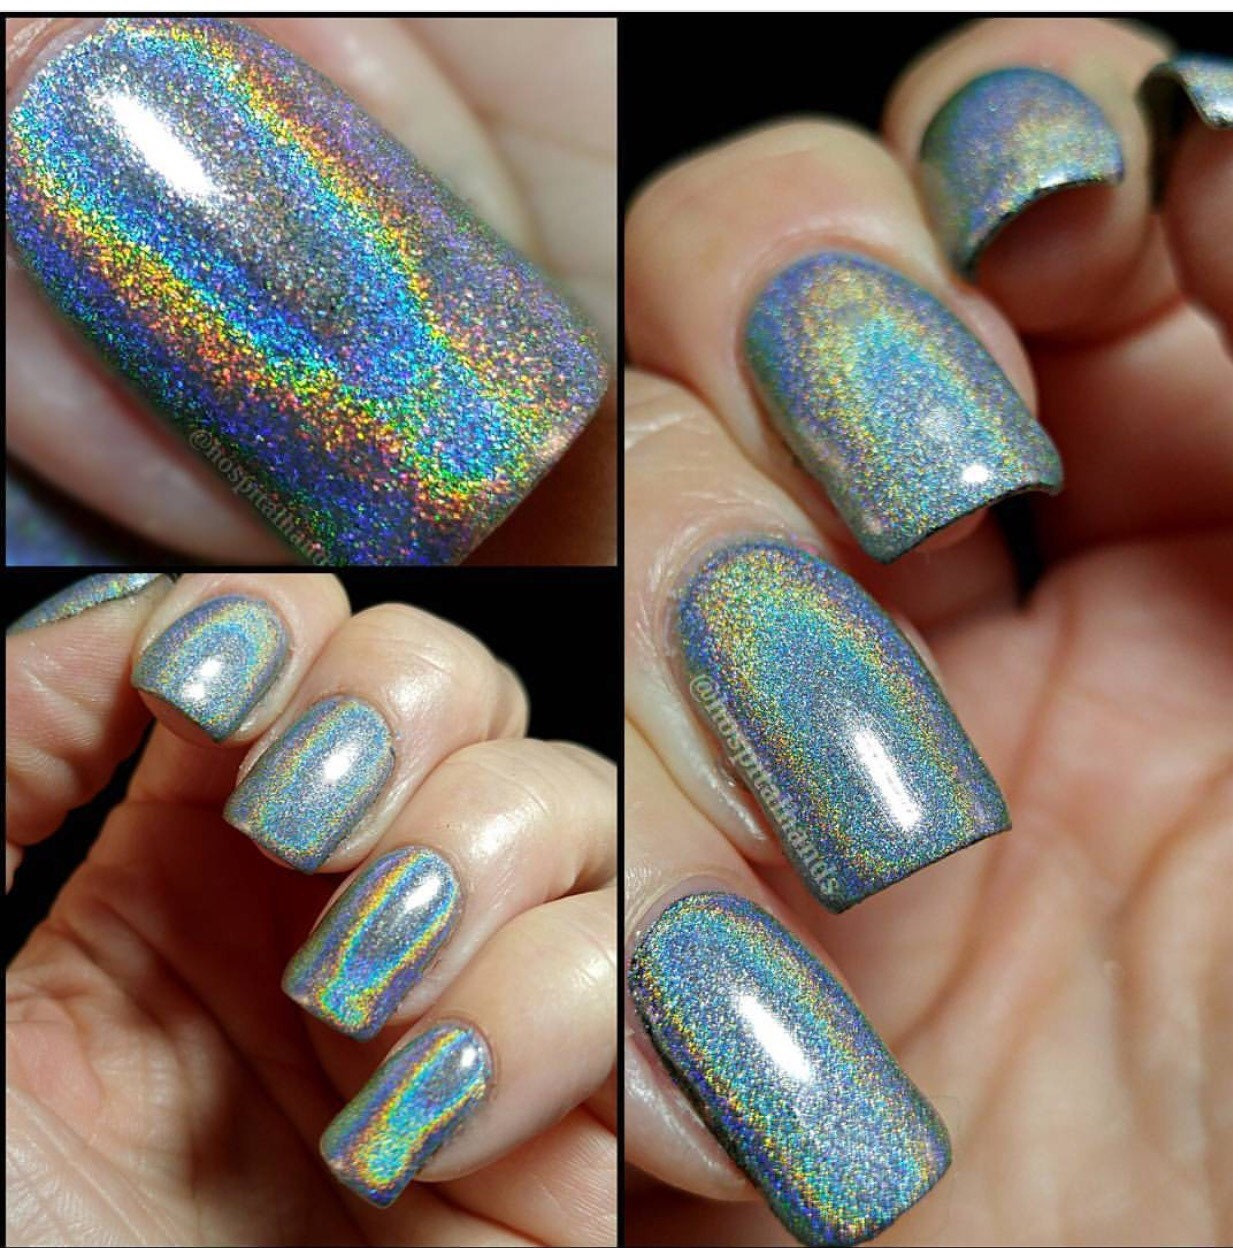 How Does Powder Nail Polish Work: 50 Micron Holographic Unicorn Powder Ultra Fine For